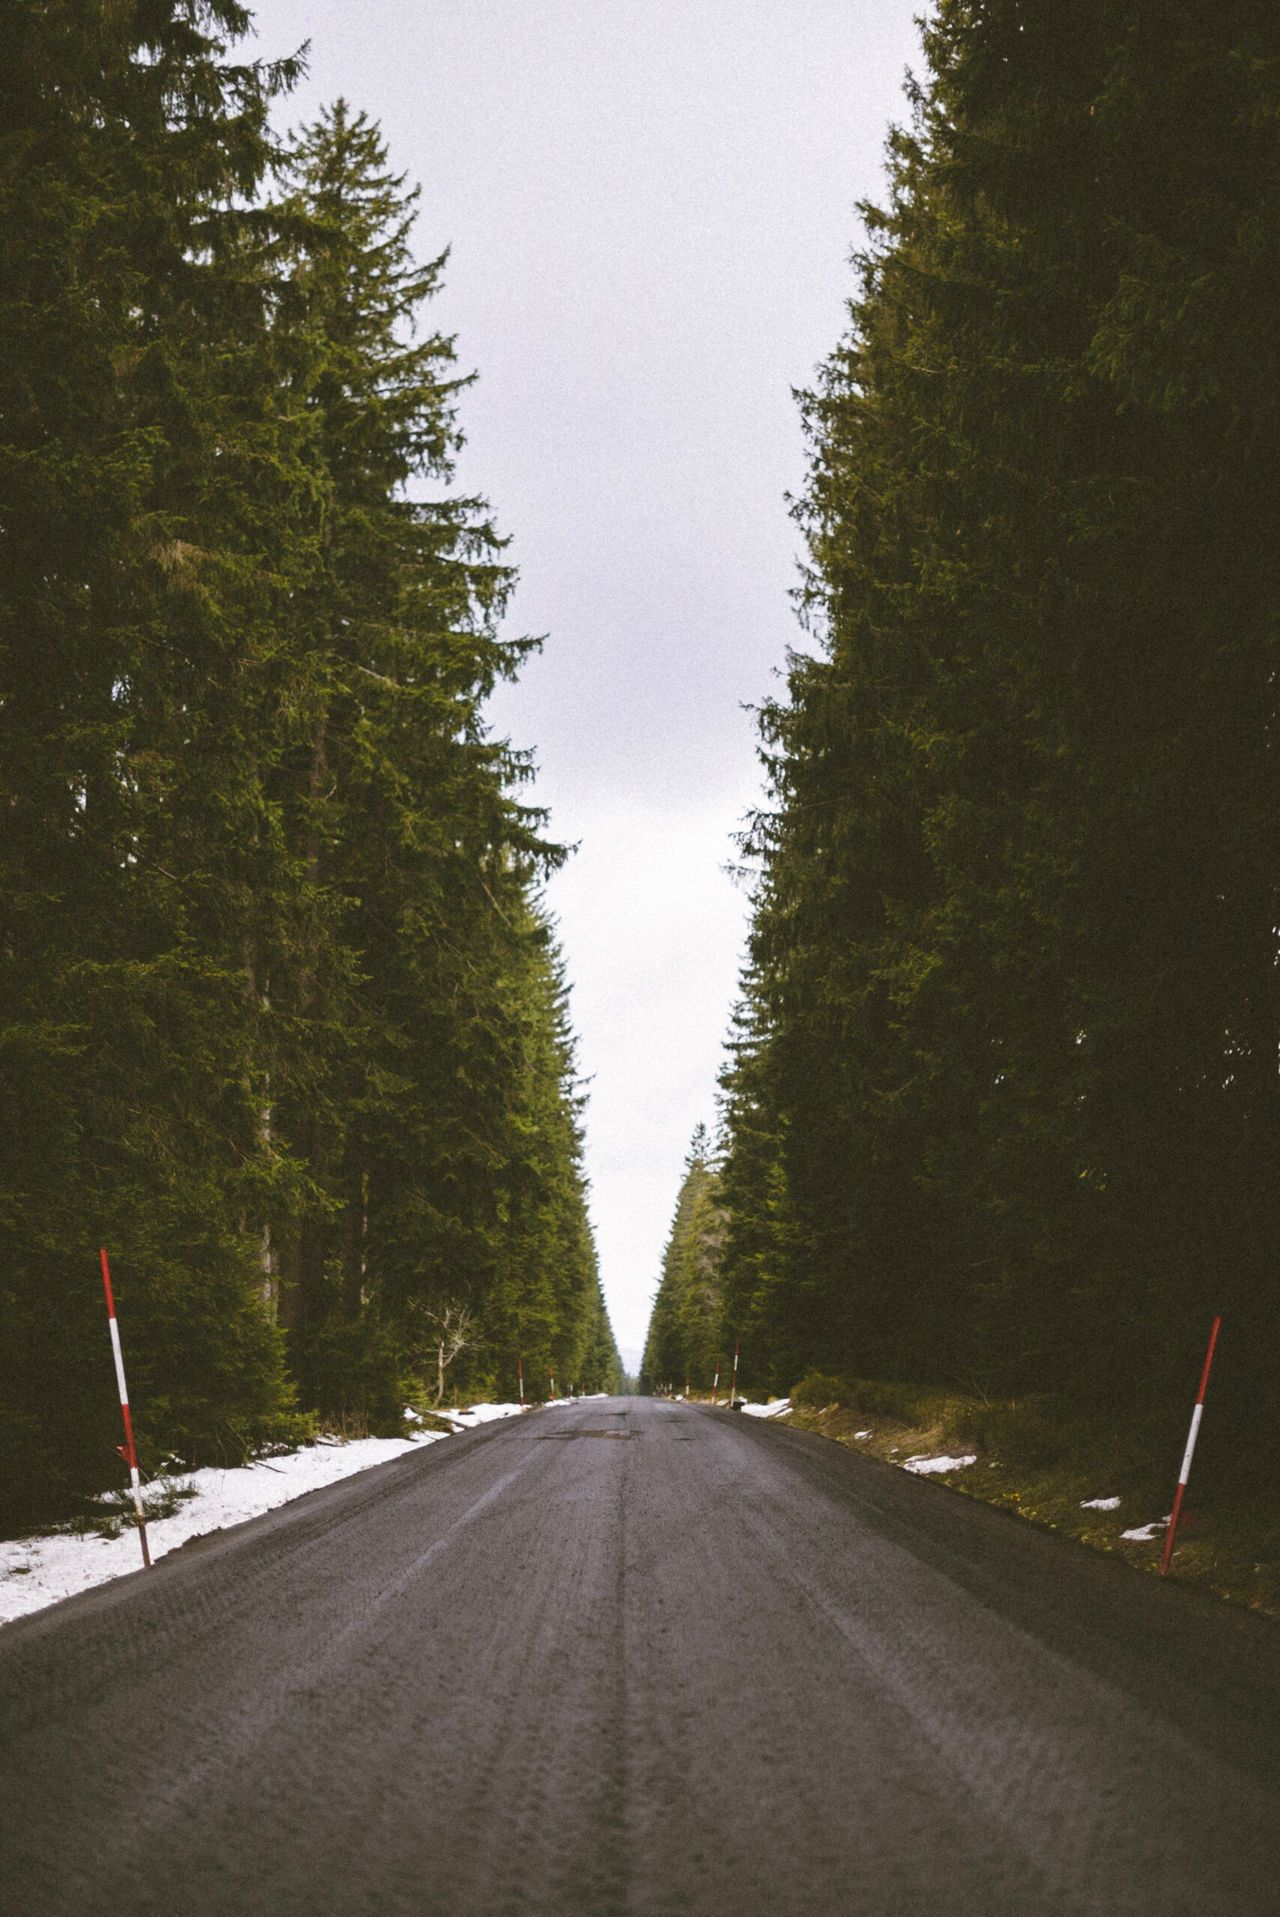 Road Forest Drive Roadtrip Road The Way Forward Transportation Diminishing Perspective Tree Day No People Outdoors Sky Nature